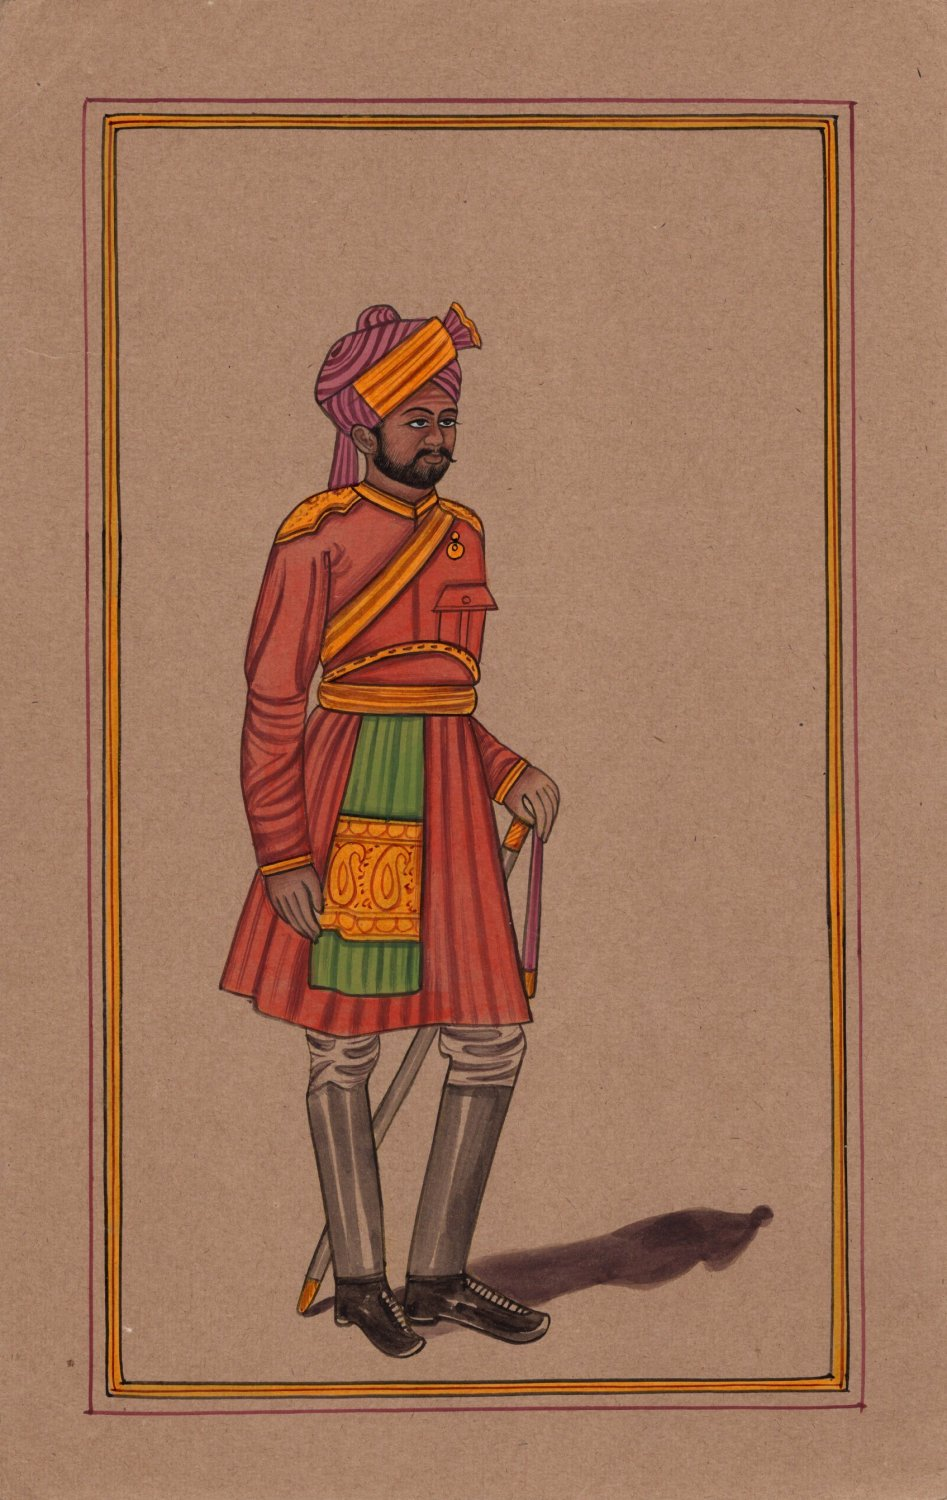 India Miniature Art Handmade Sikh Military Soldier Sentry Portrait Painting